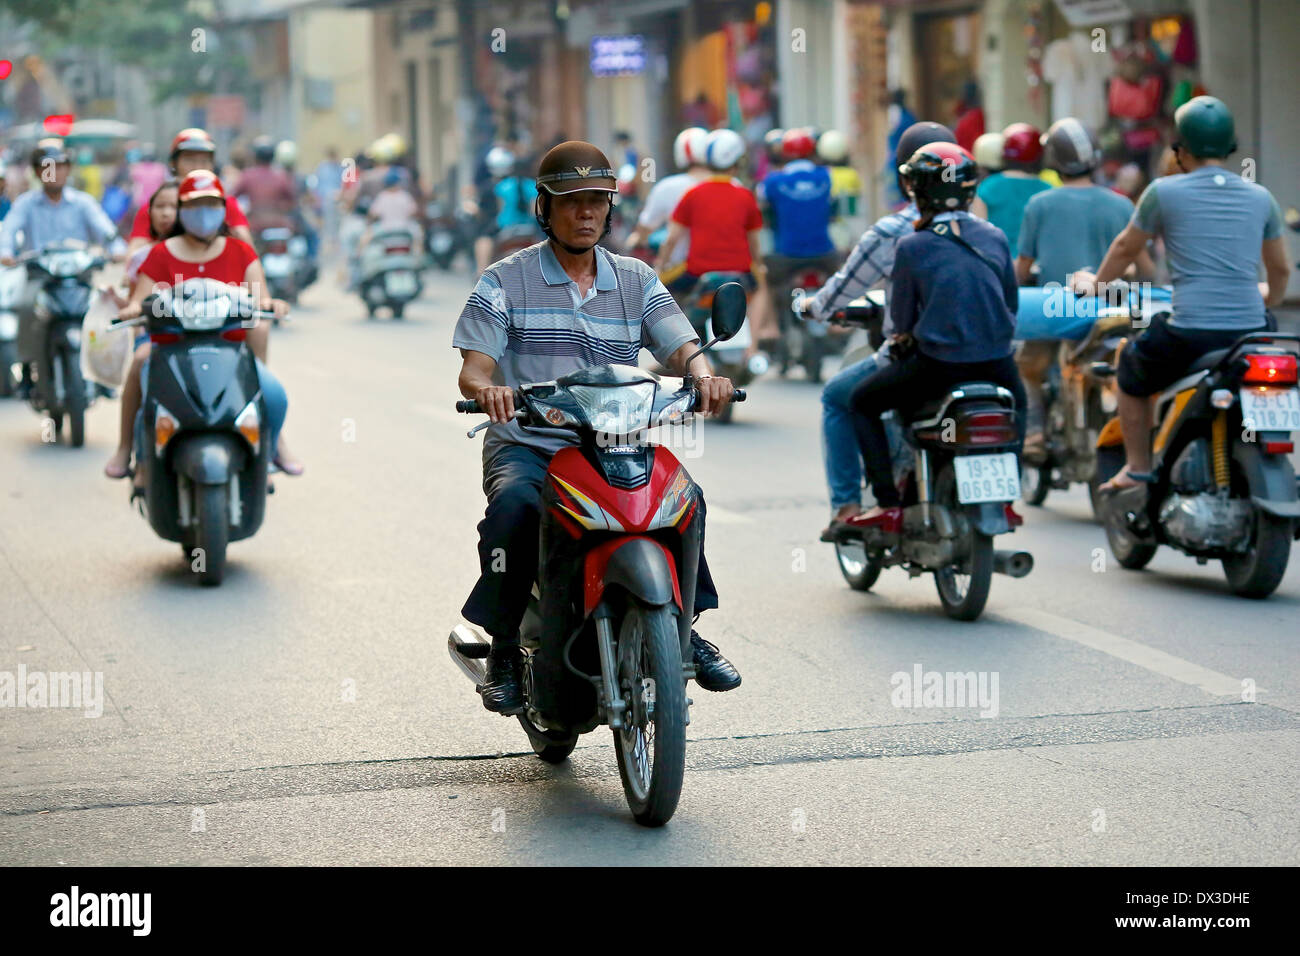 Vietnamese commuters on motorbikes in the Old Quarter of Hanoi. Hanoi, Vietnam, Southeast Asia - Stock Image